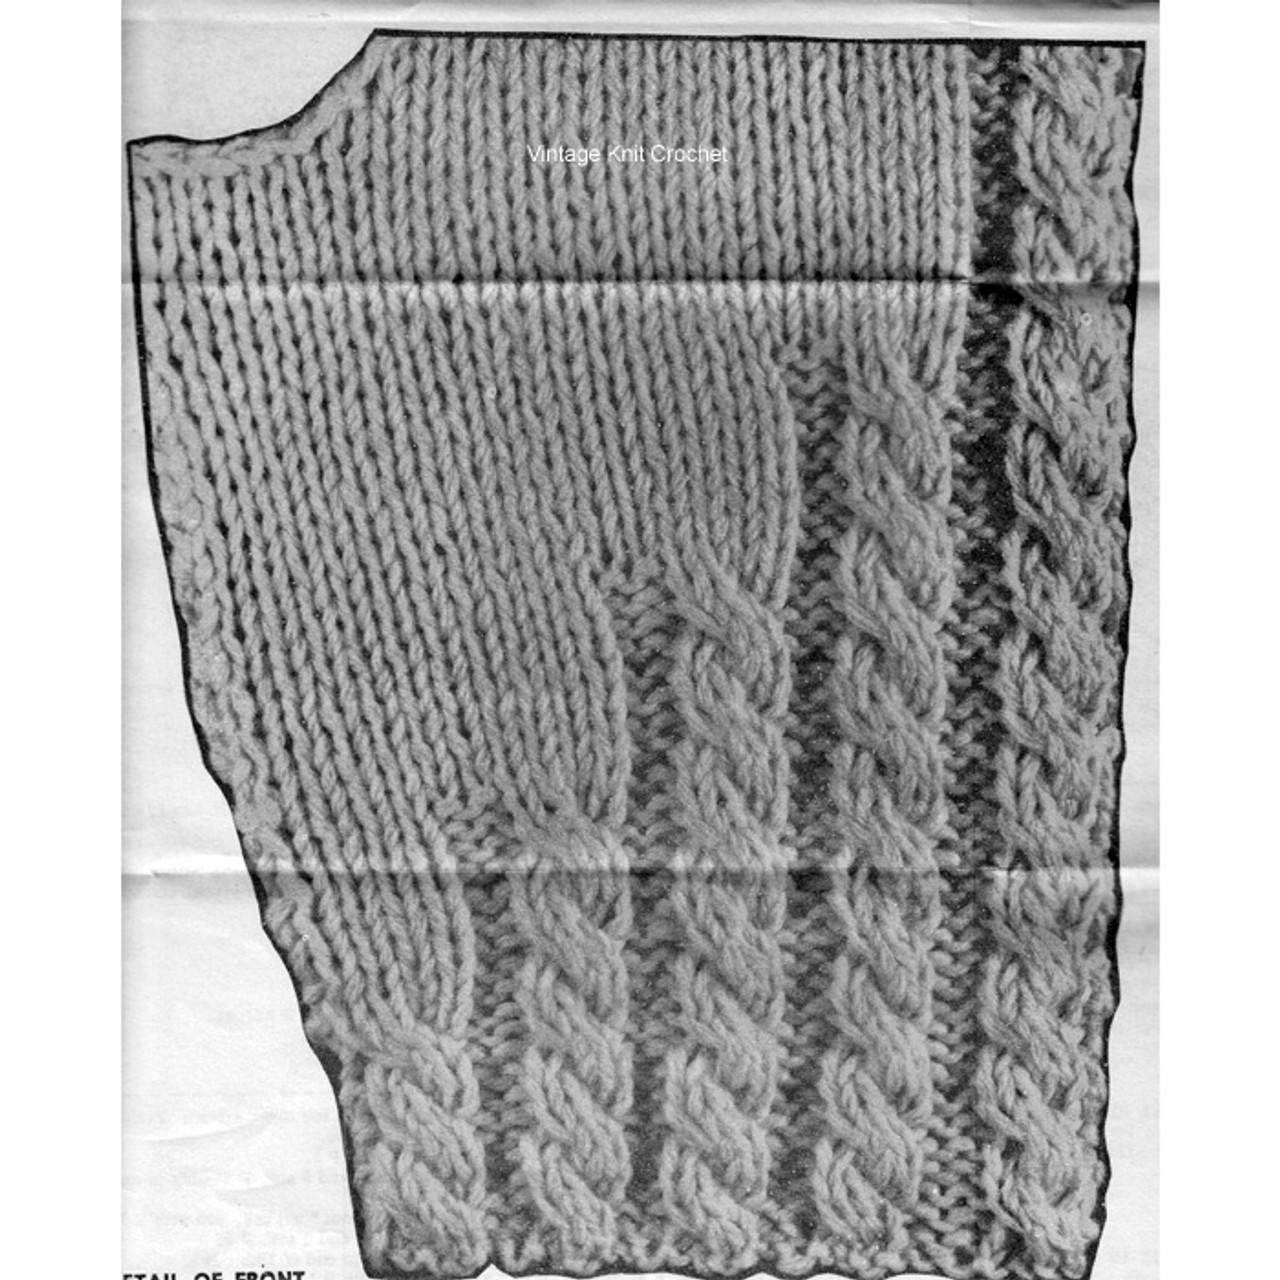 Knitted cable trim illustration on childs jacket.